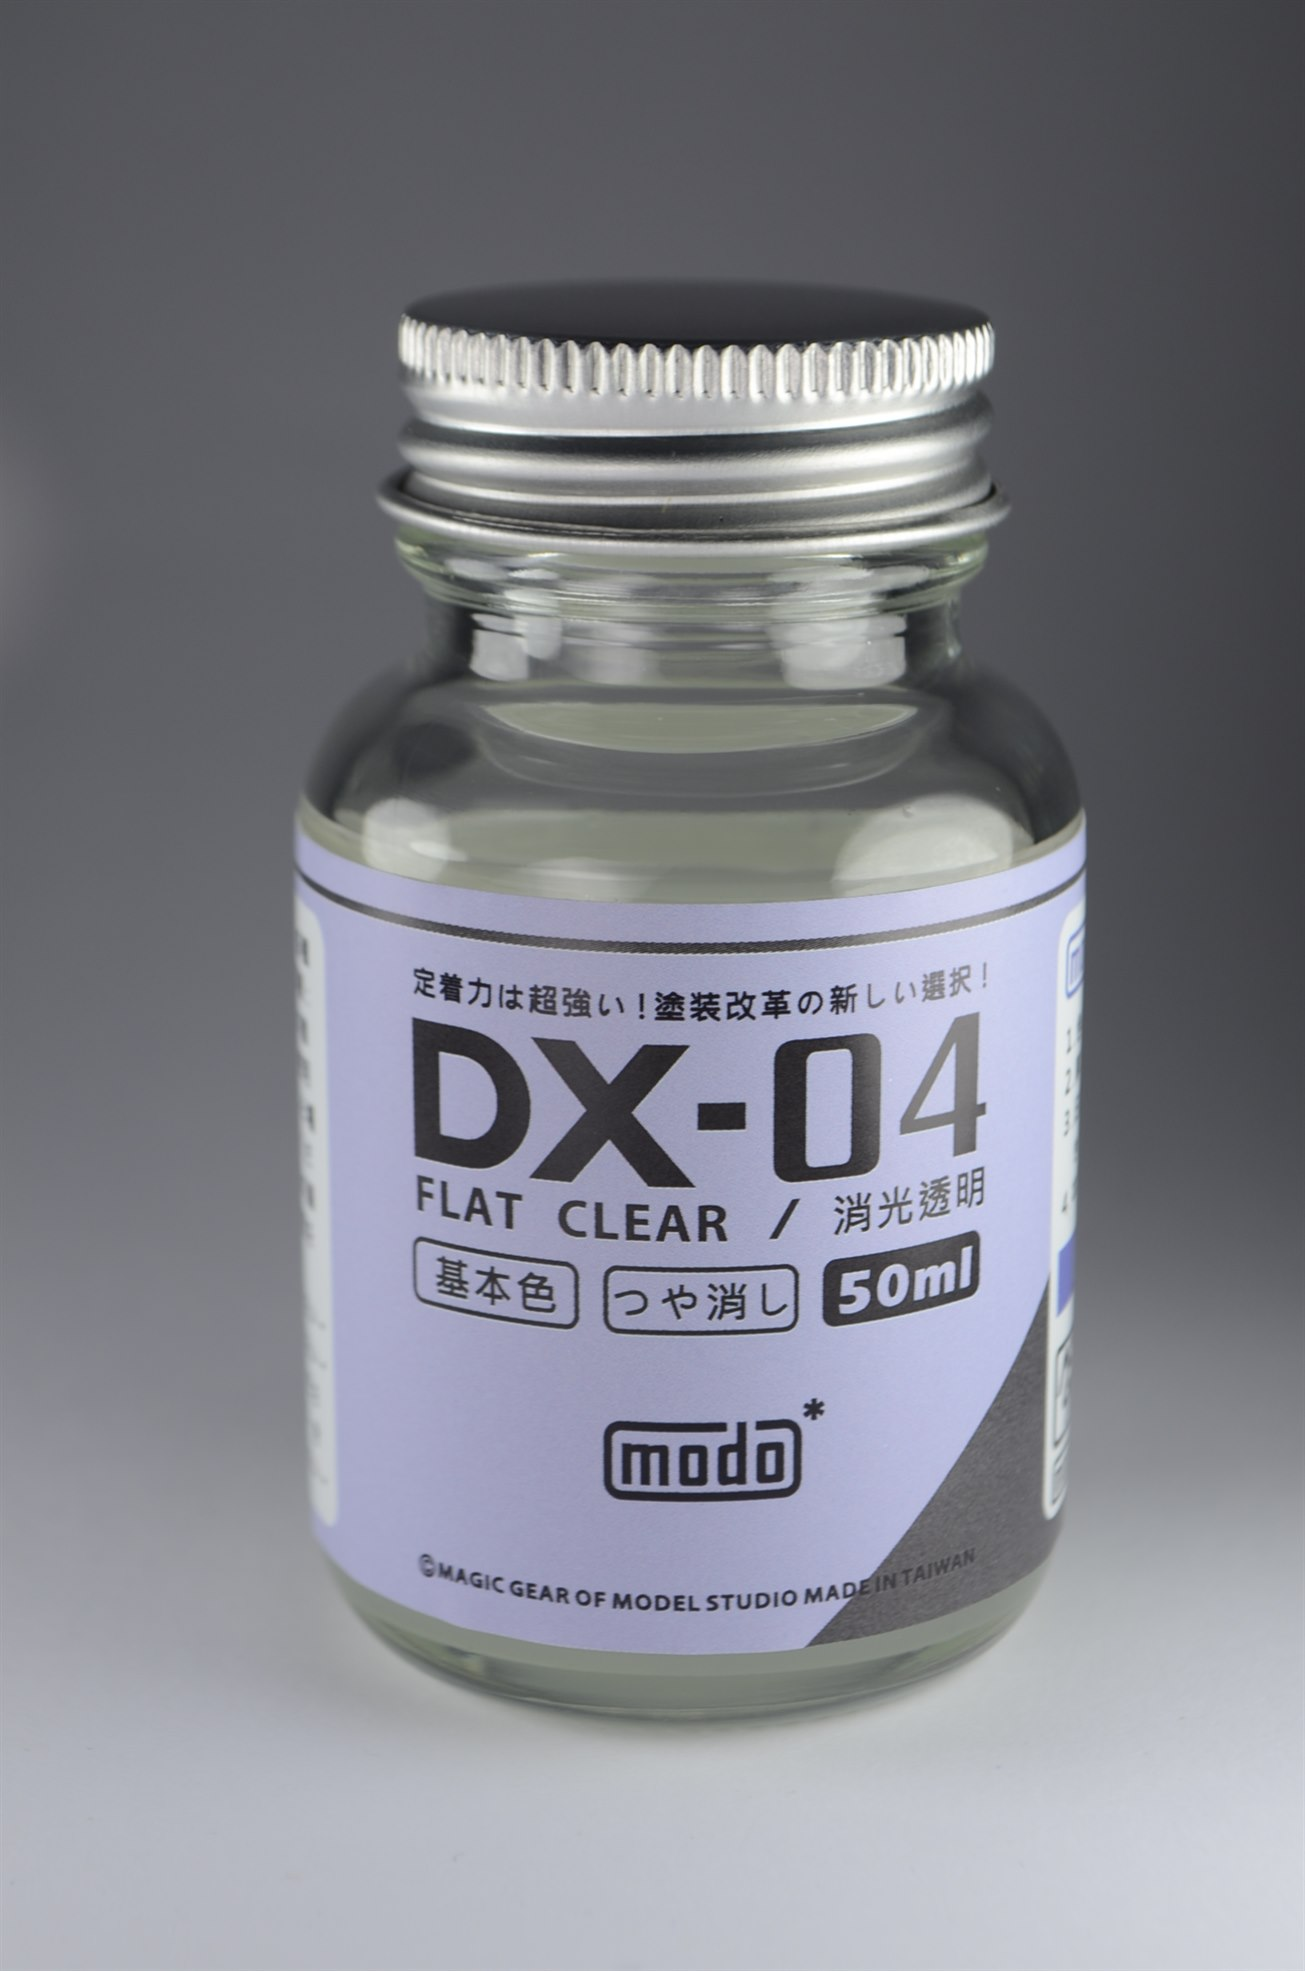 MODO FLAT Clear Coat DX-04 50ML